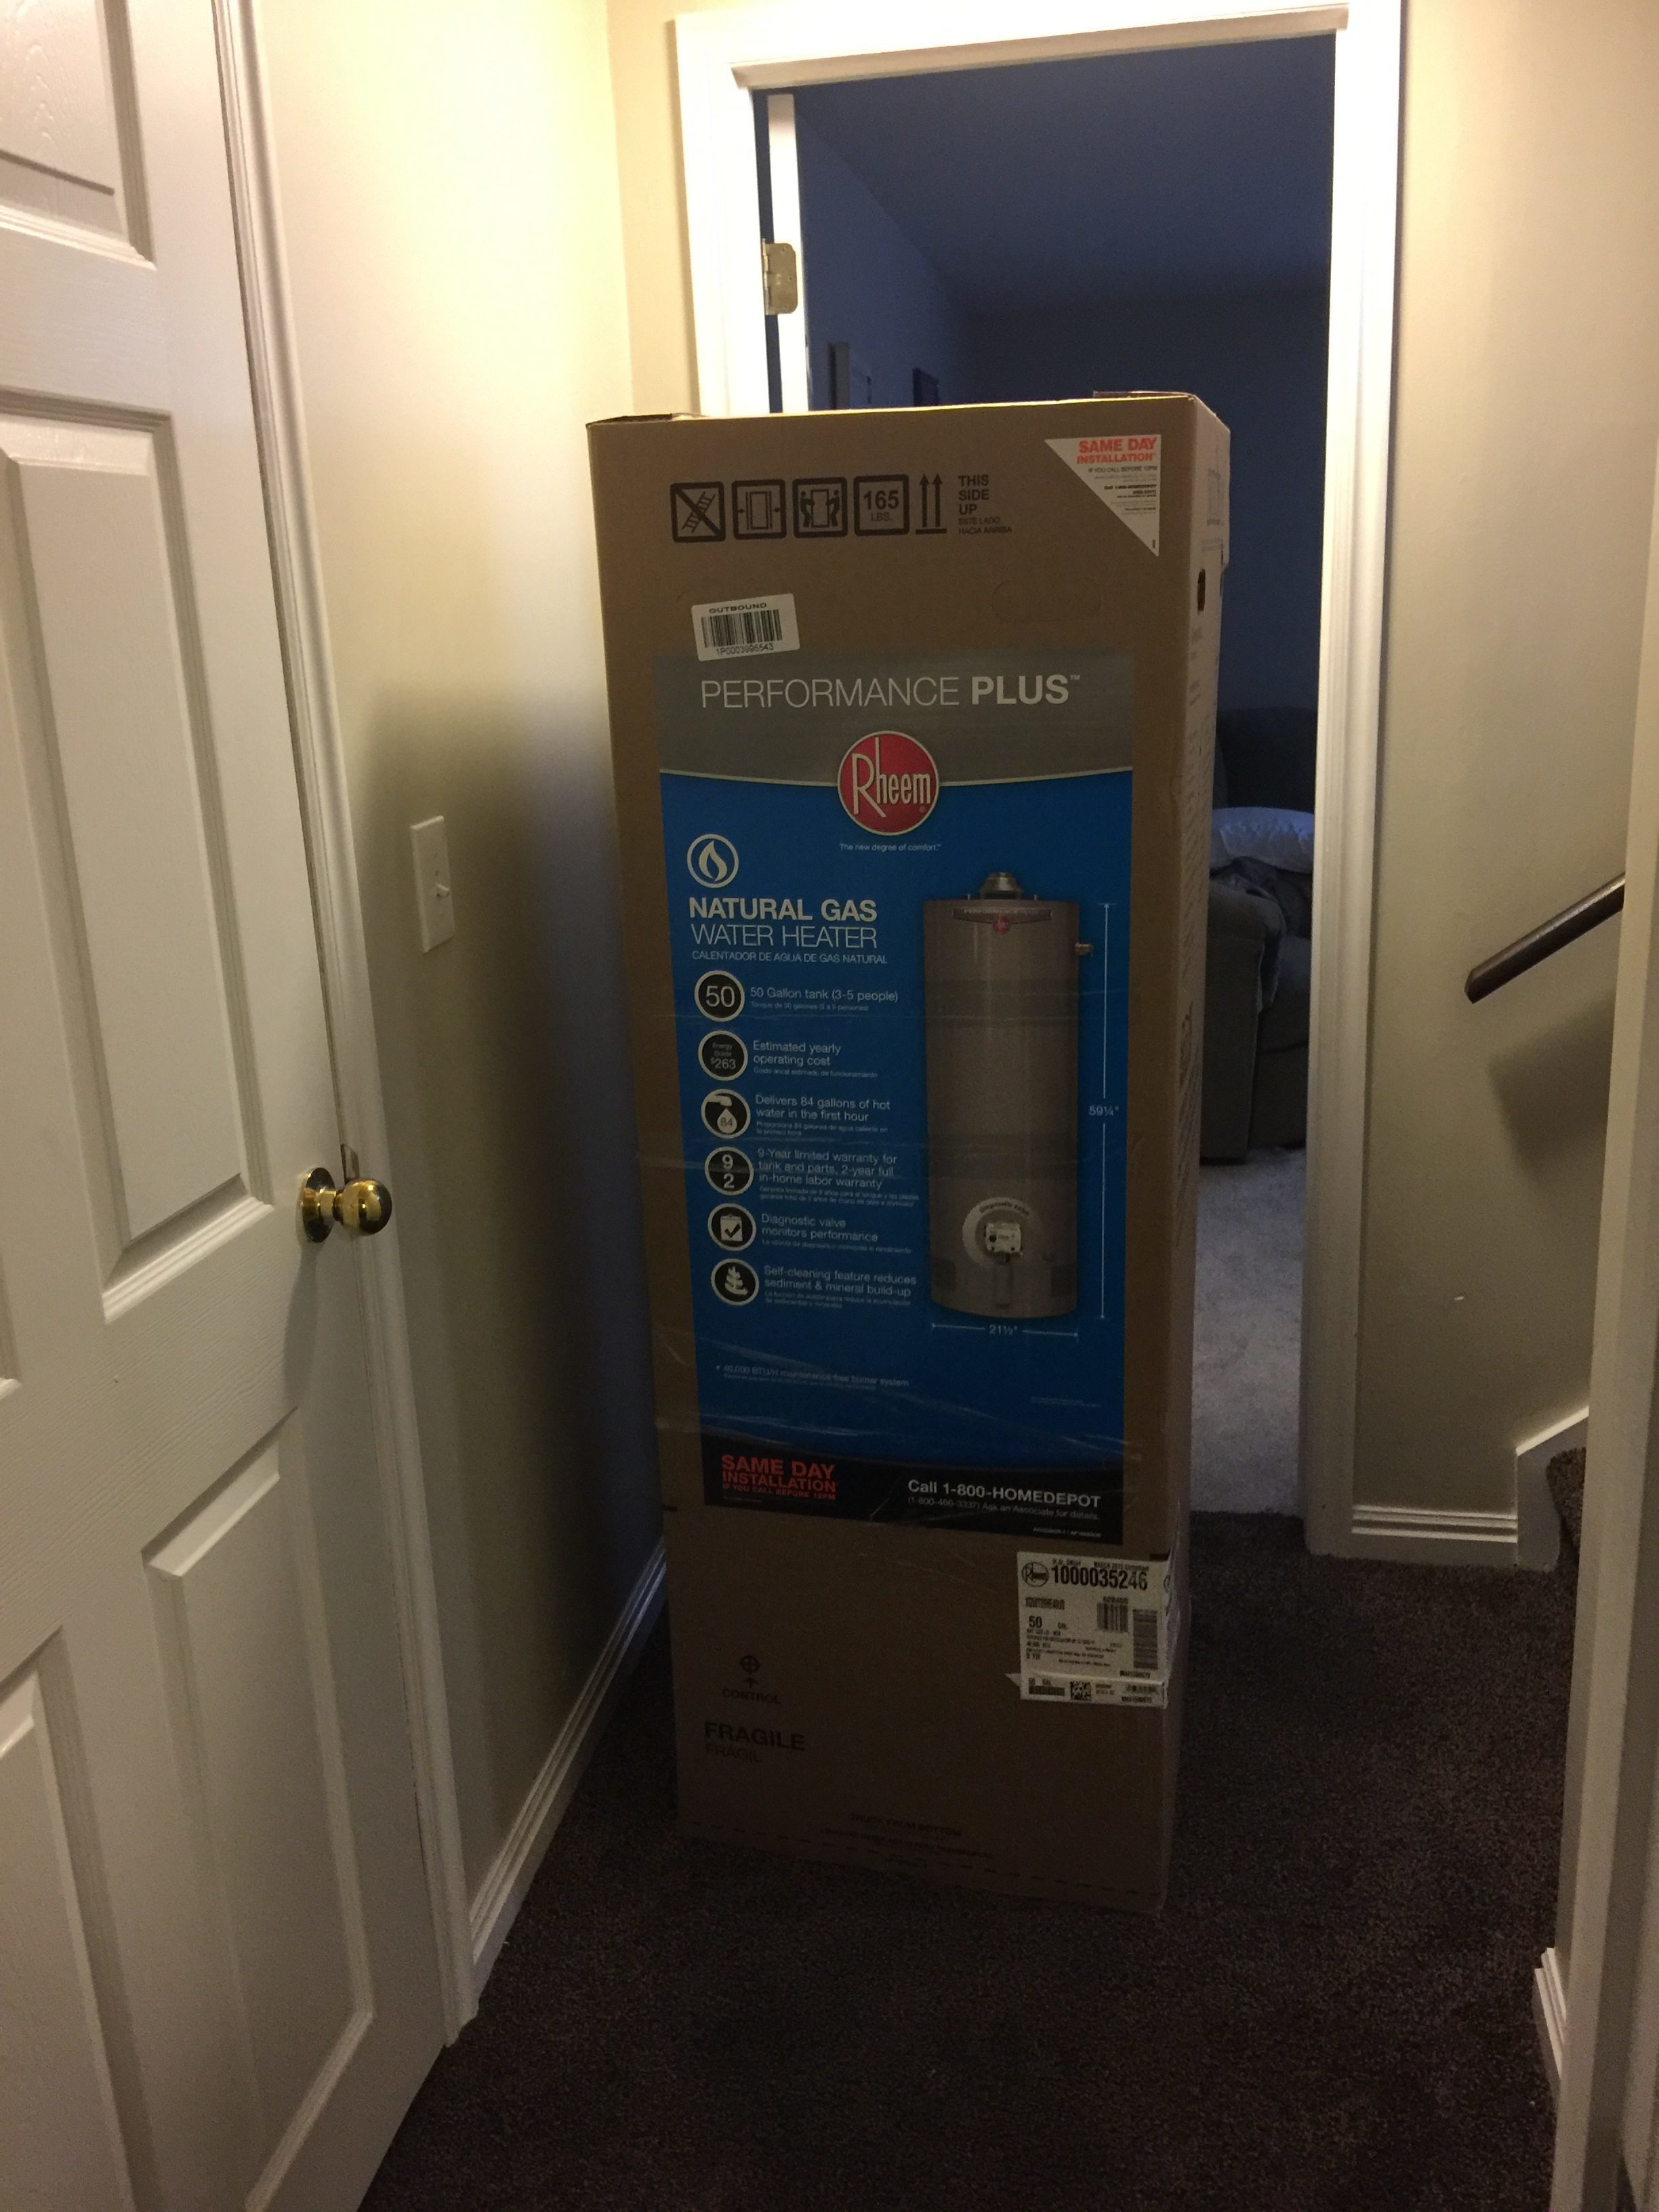 rheem water heater 40 gallon. on 1 2 16 we purchased a rheem water heater and installed it never worked 40 gallon